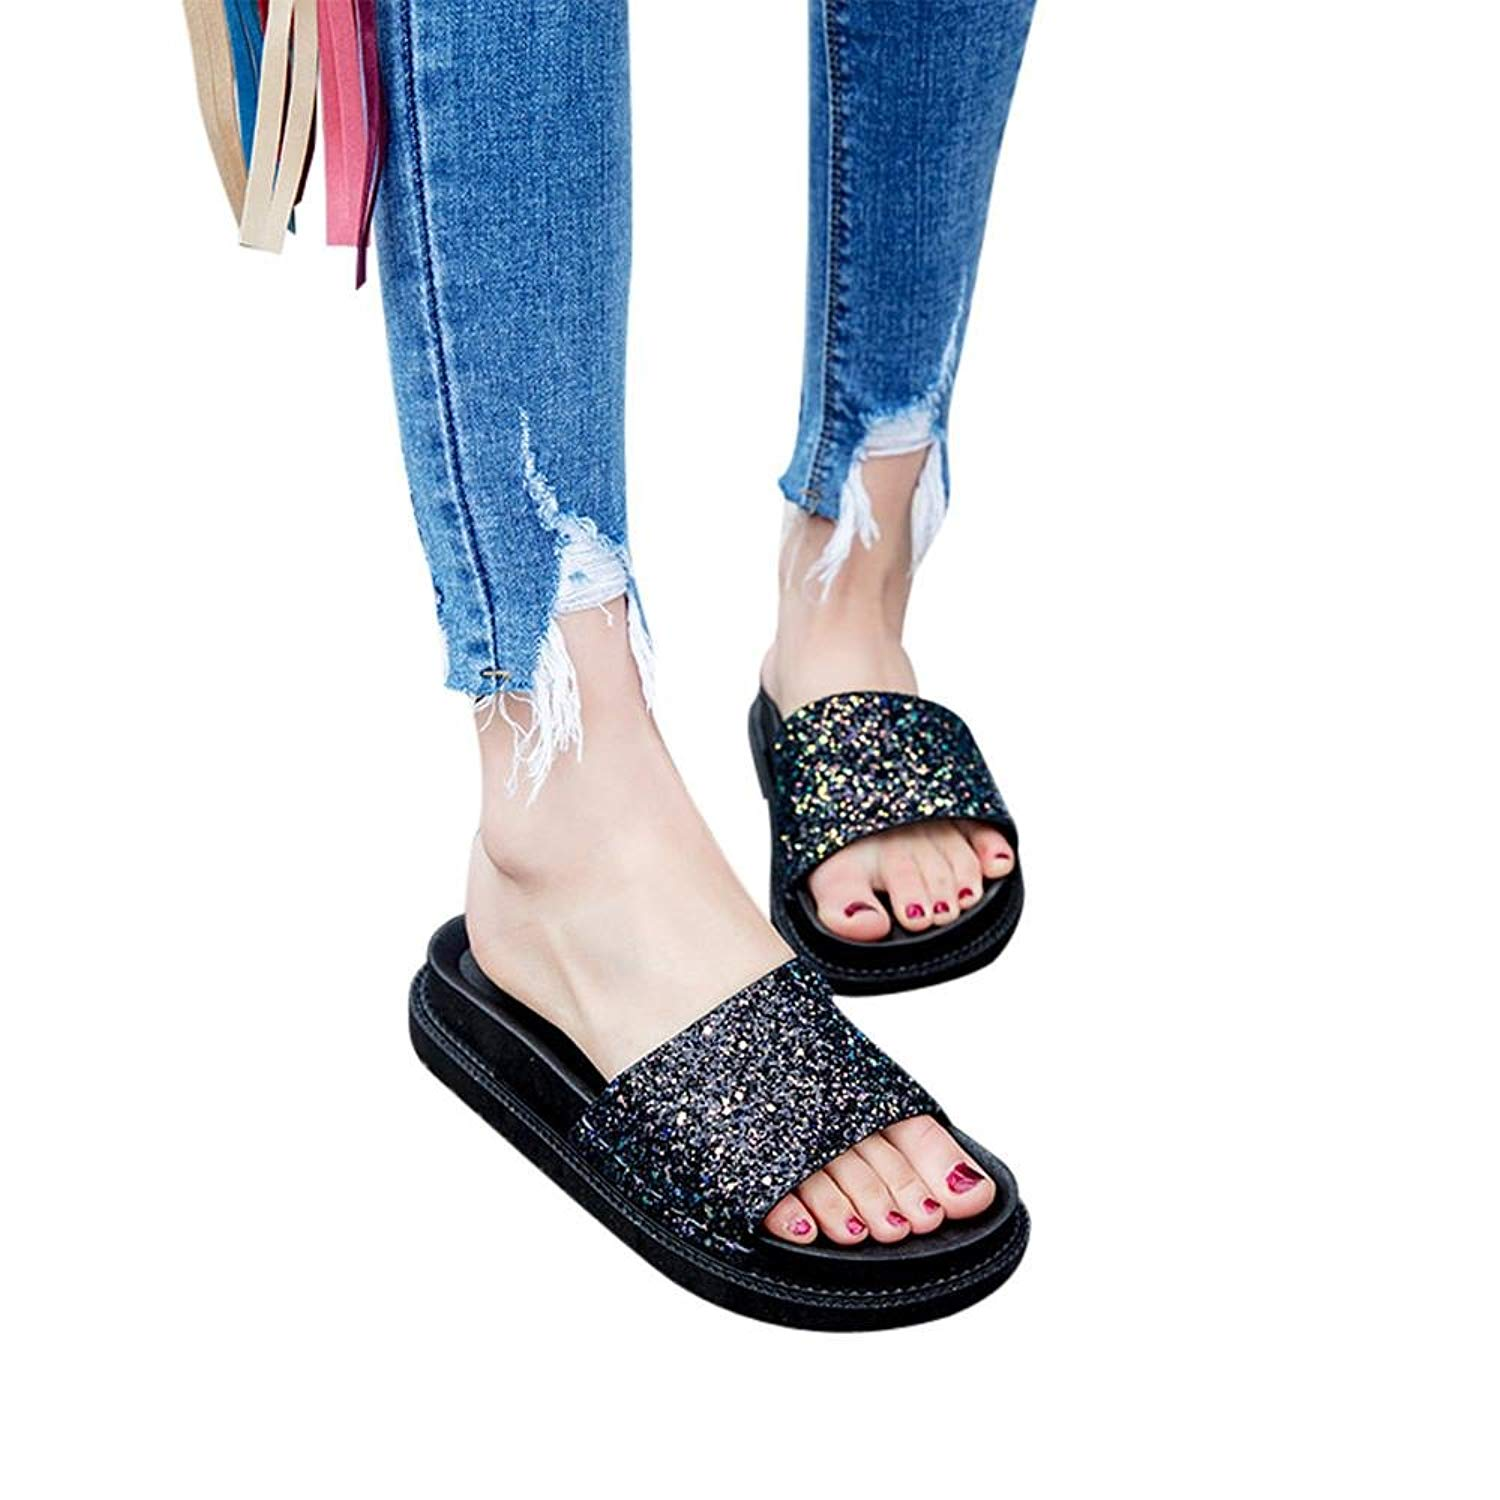 Elevin(TM) Women Flip Flops Flat Sandals Solid Color Wedge Sandals Slippers Girl House Shoes Summer Beach Mules